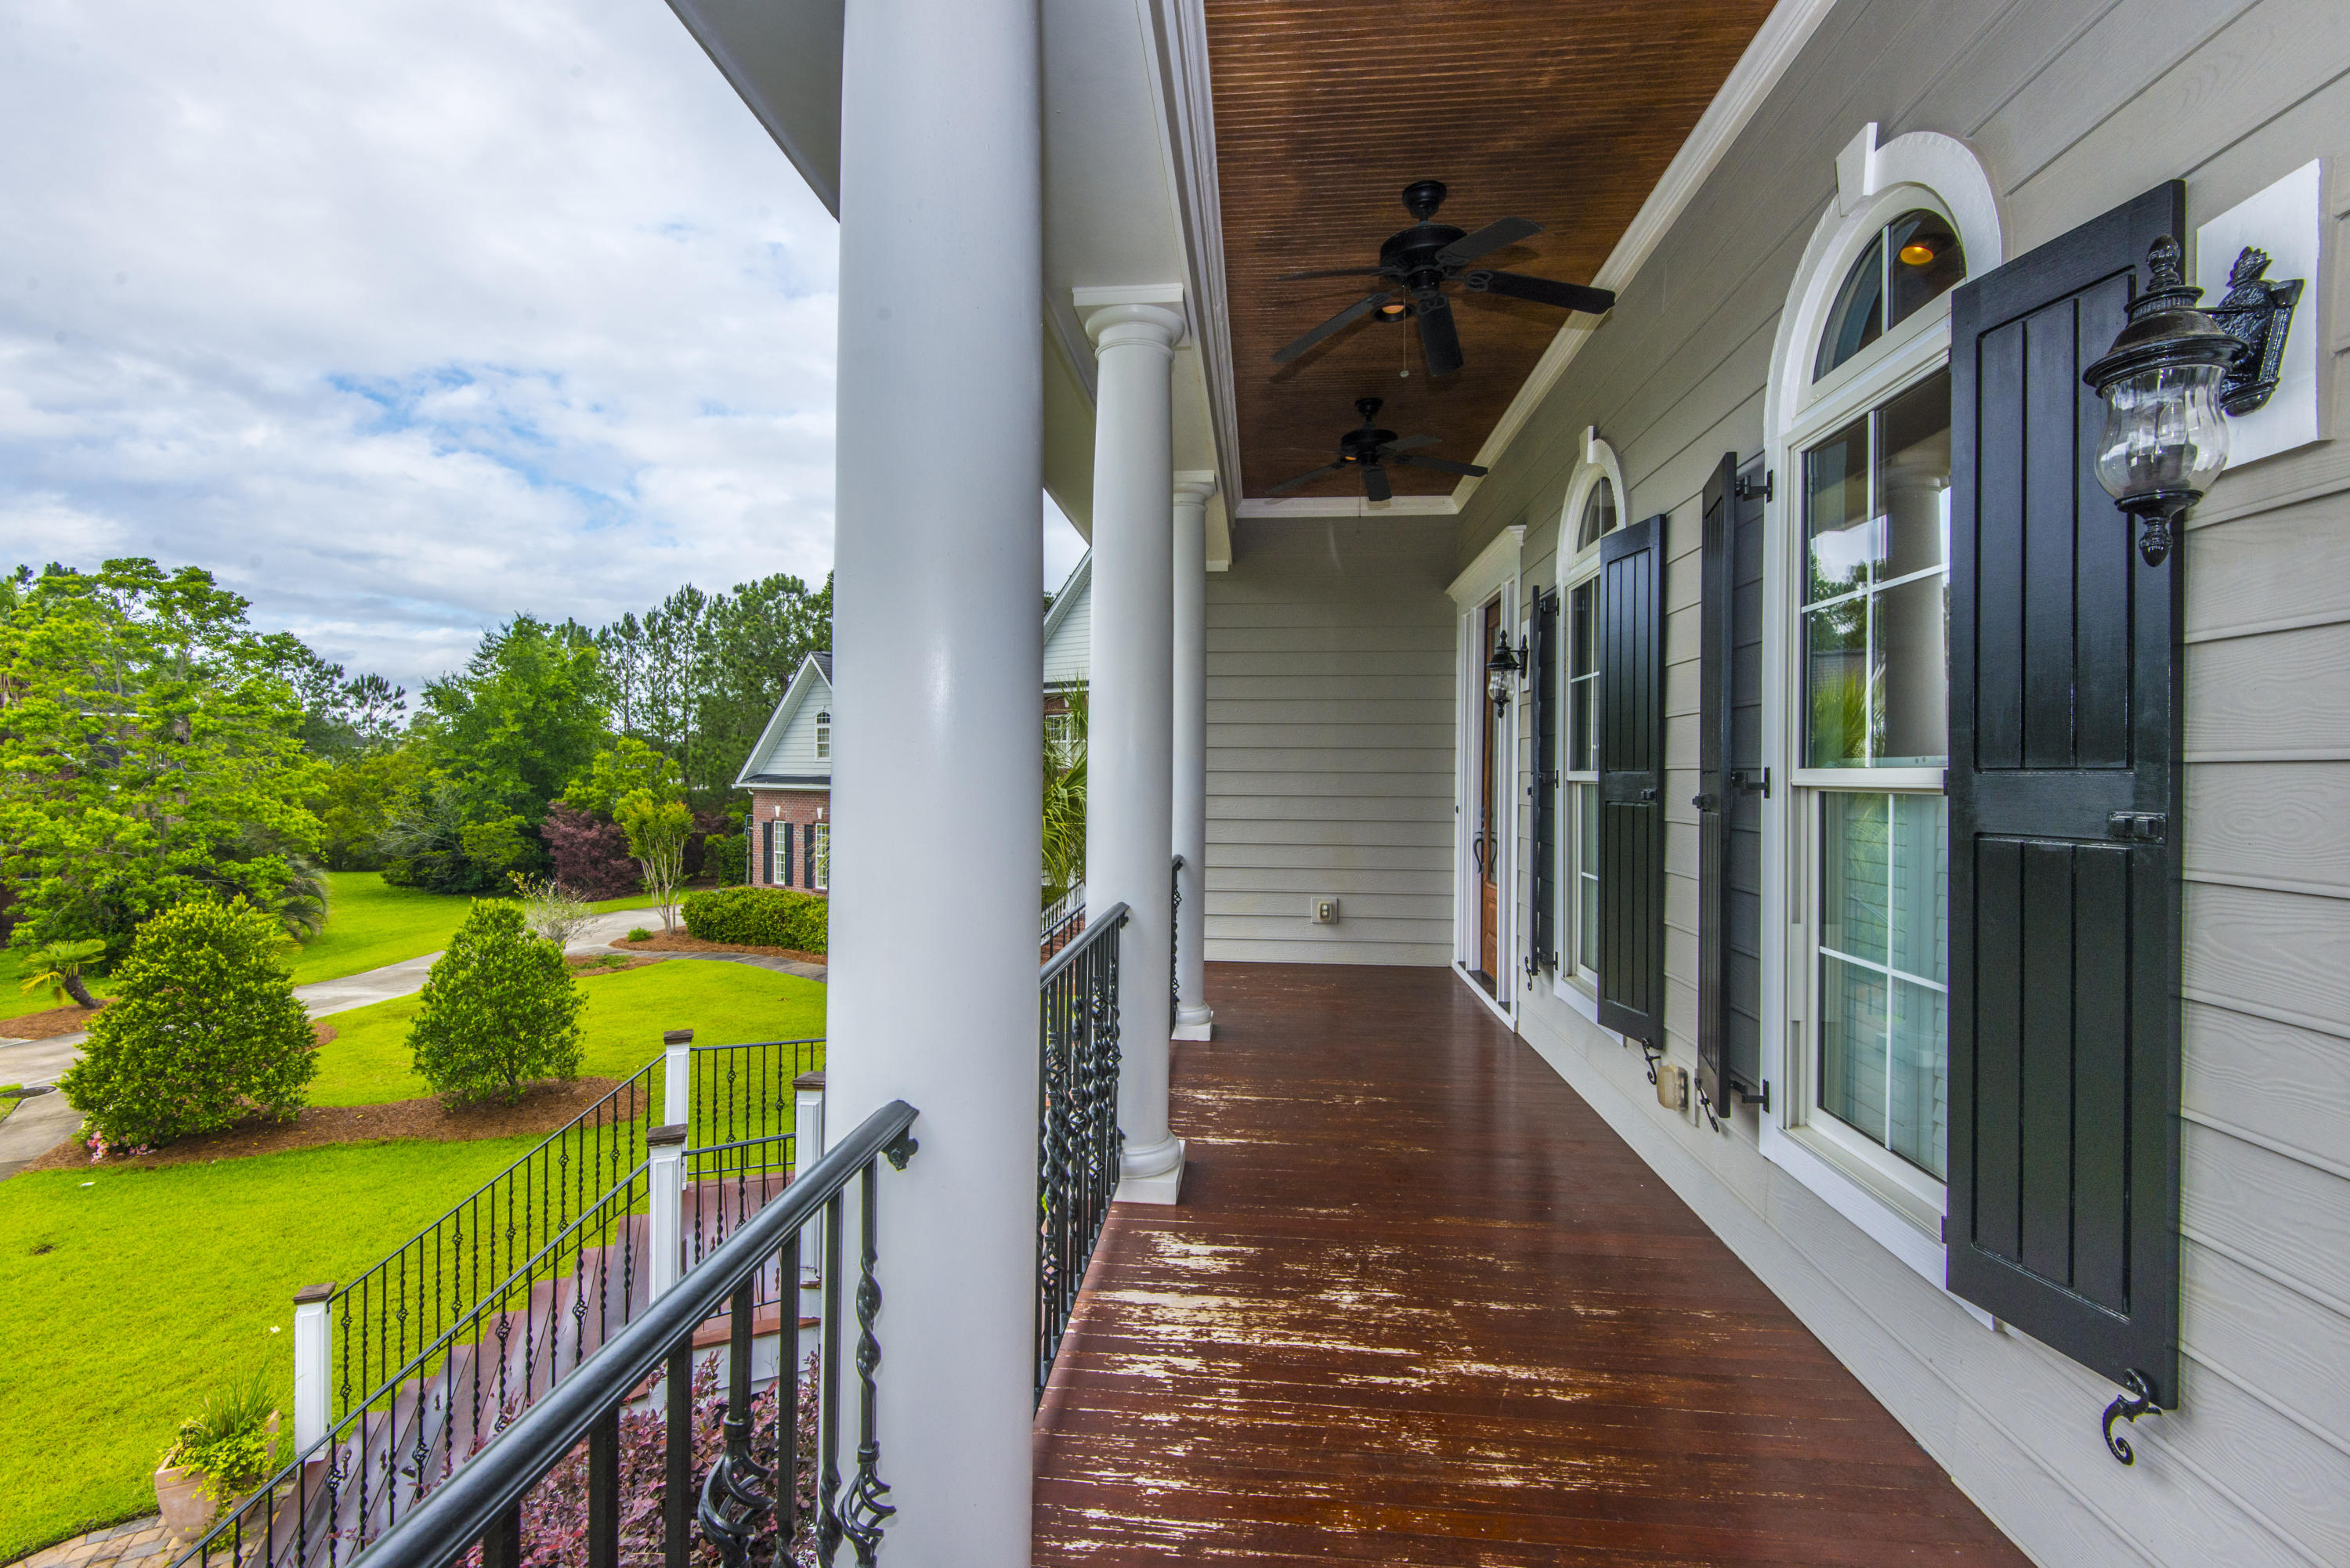 Home for sale 1316 Mcleans Court, Brickyard Plantation, Mt. Pleasant, SC